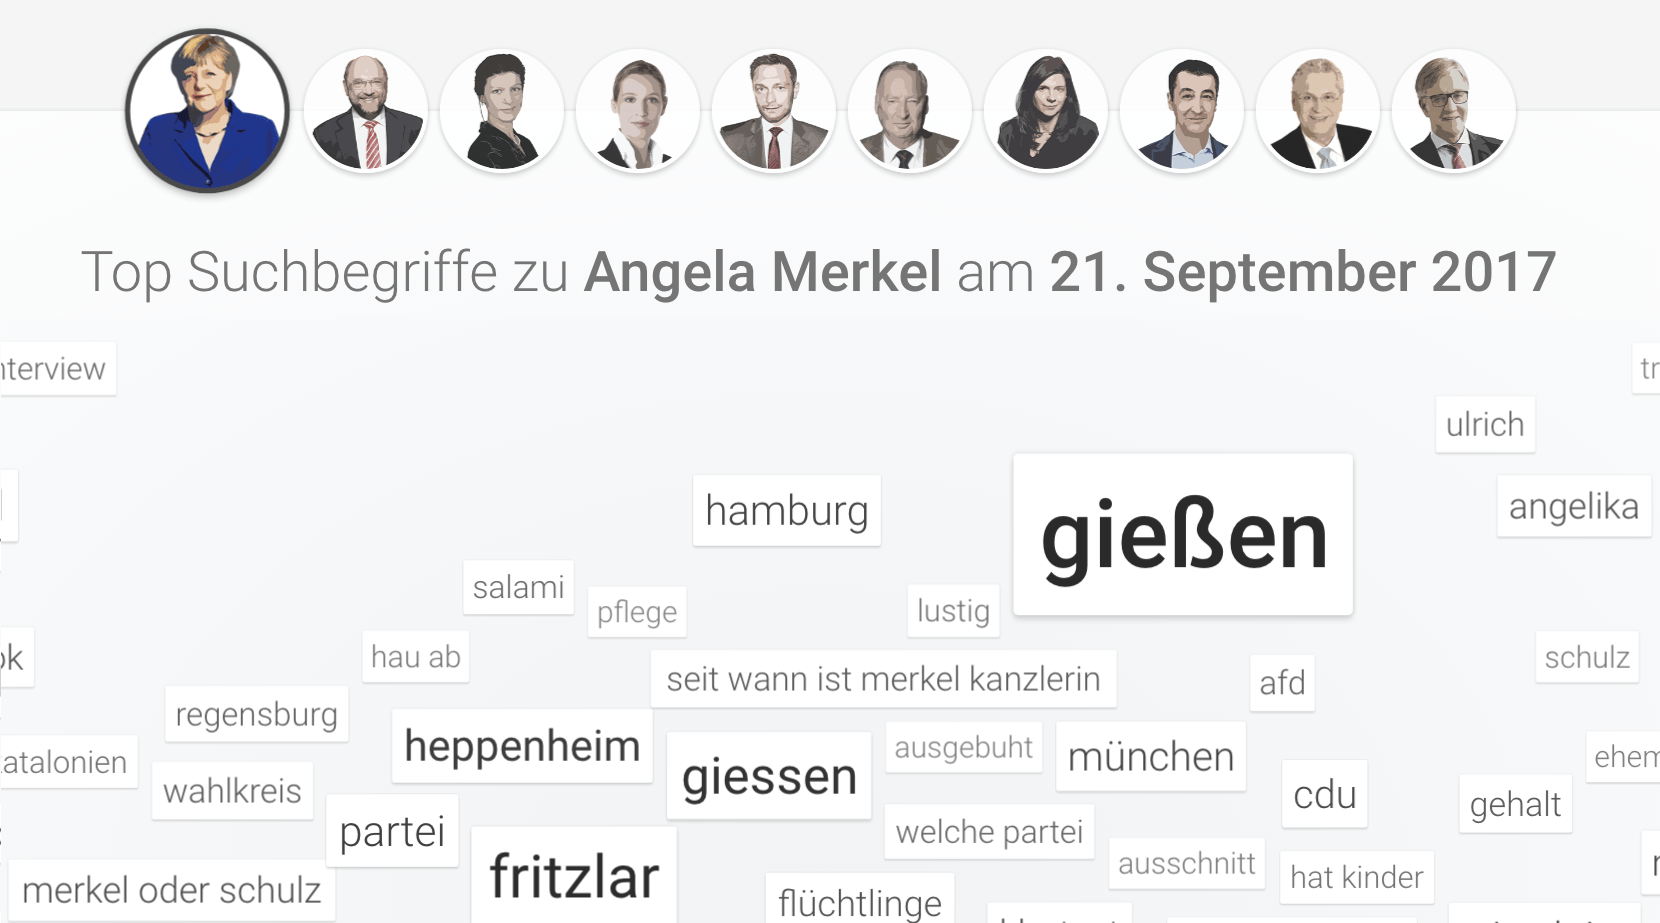 Second Hand Kinderkleidung Regensburg Döner Charts Eye Roll Gifs And Word Clouds Some Things We